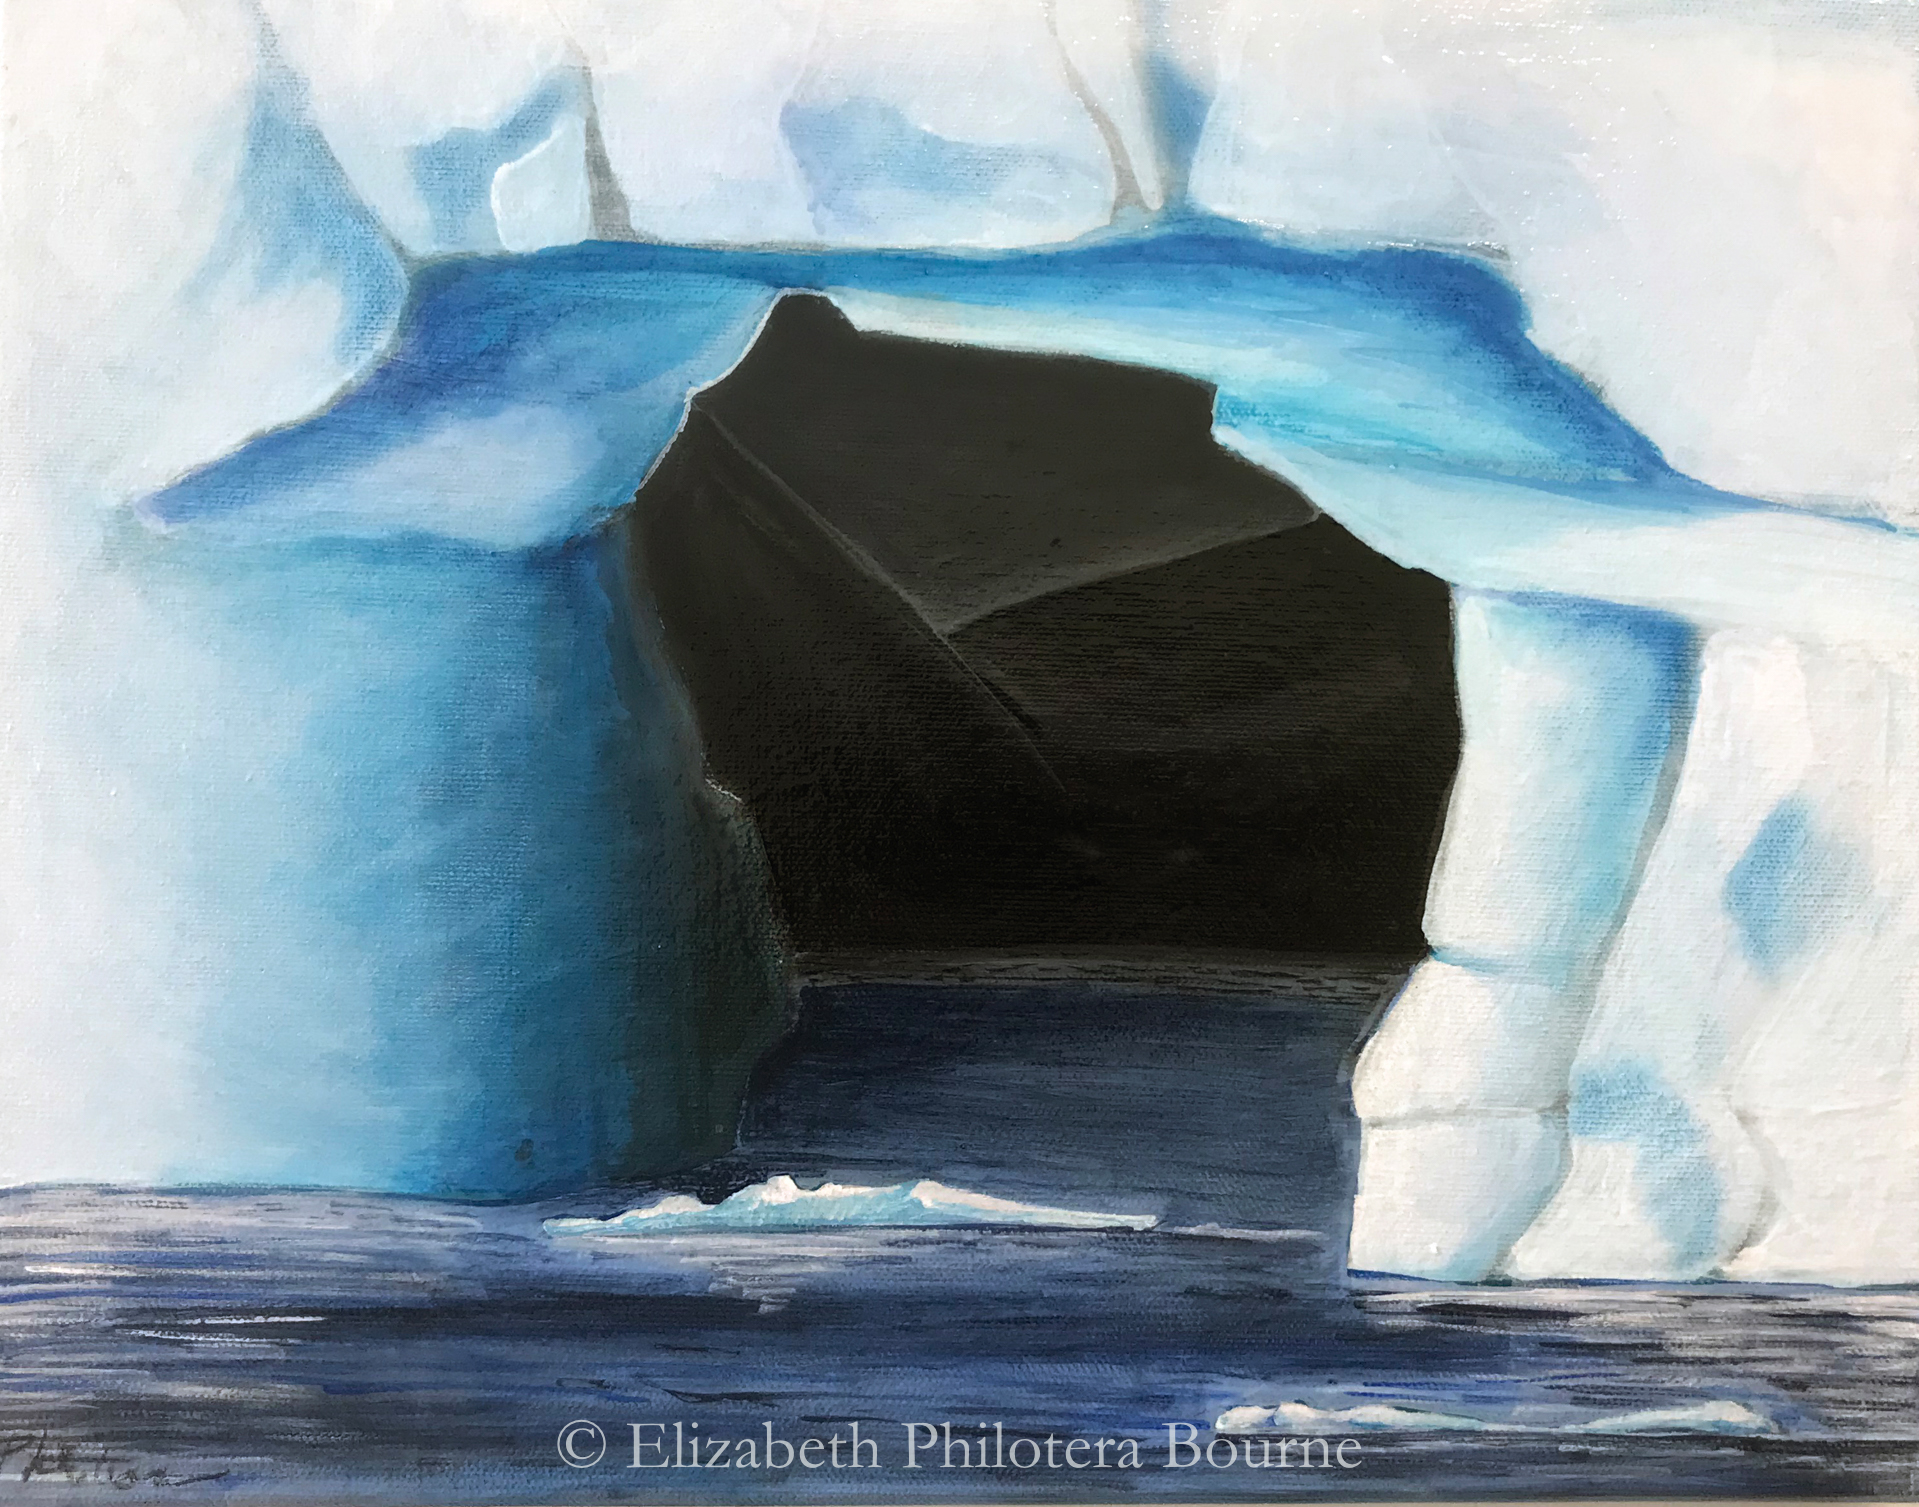 painting close up of arched iceberg with black mountains behind